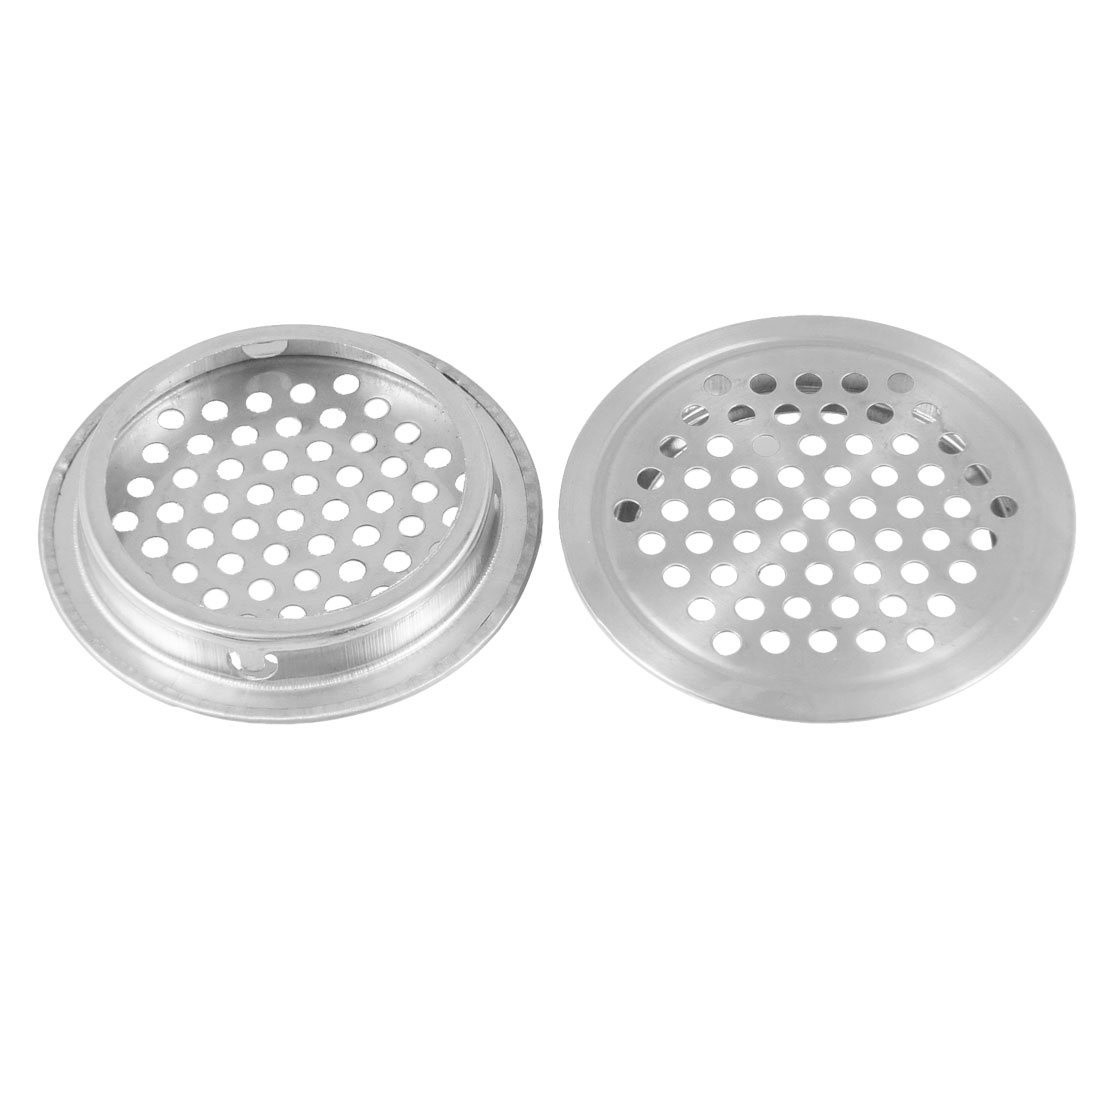 Home Silver Tone Stainless Steel Round Mesh Hole Air Vent Louver